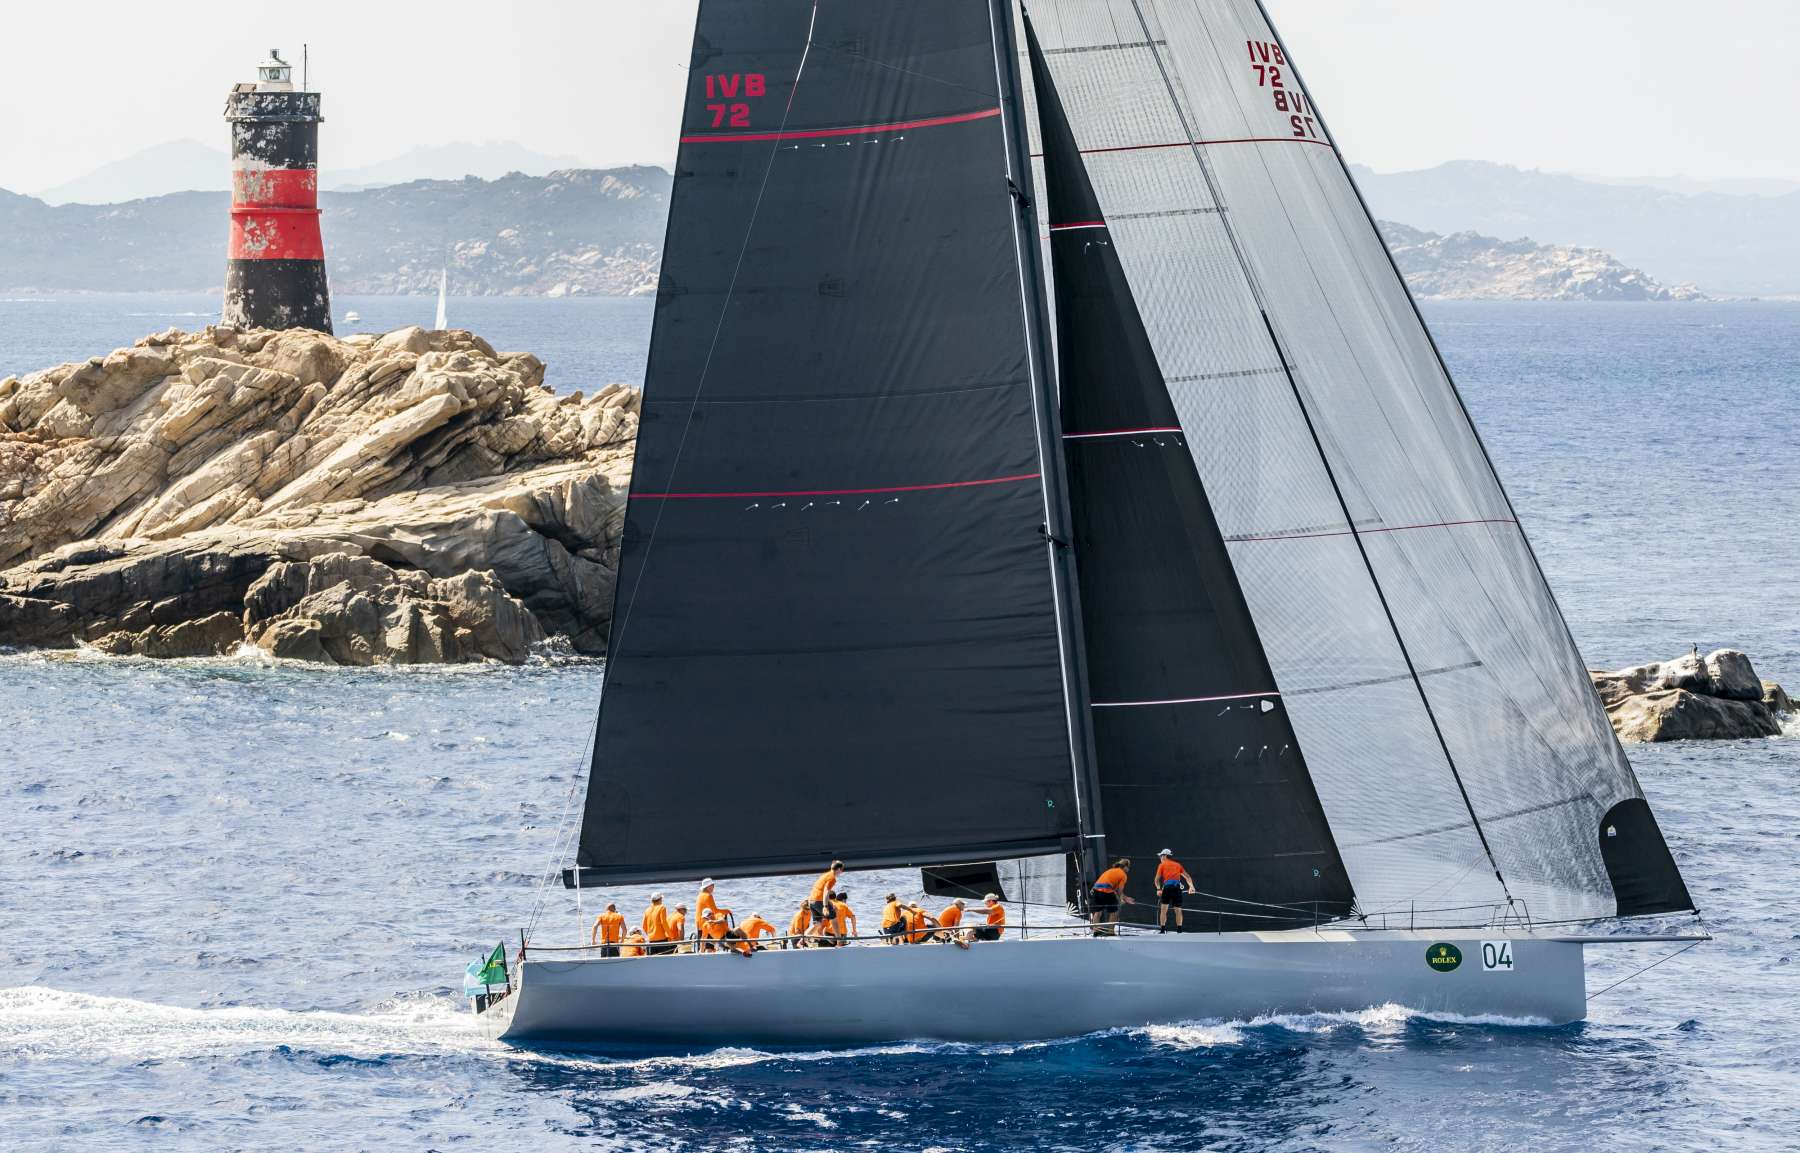 Maxi Yacht Rolex Cup: Momo, Supernikka and H2O winners with a day in hand - NEWS - Yacht Club Costa Smeralda